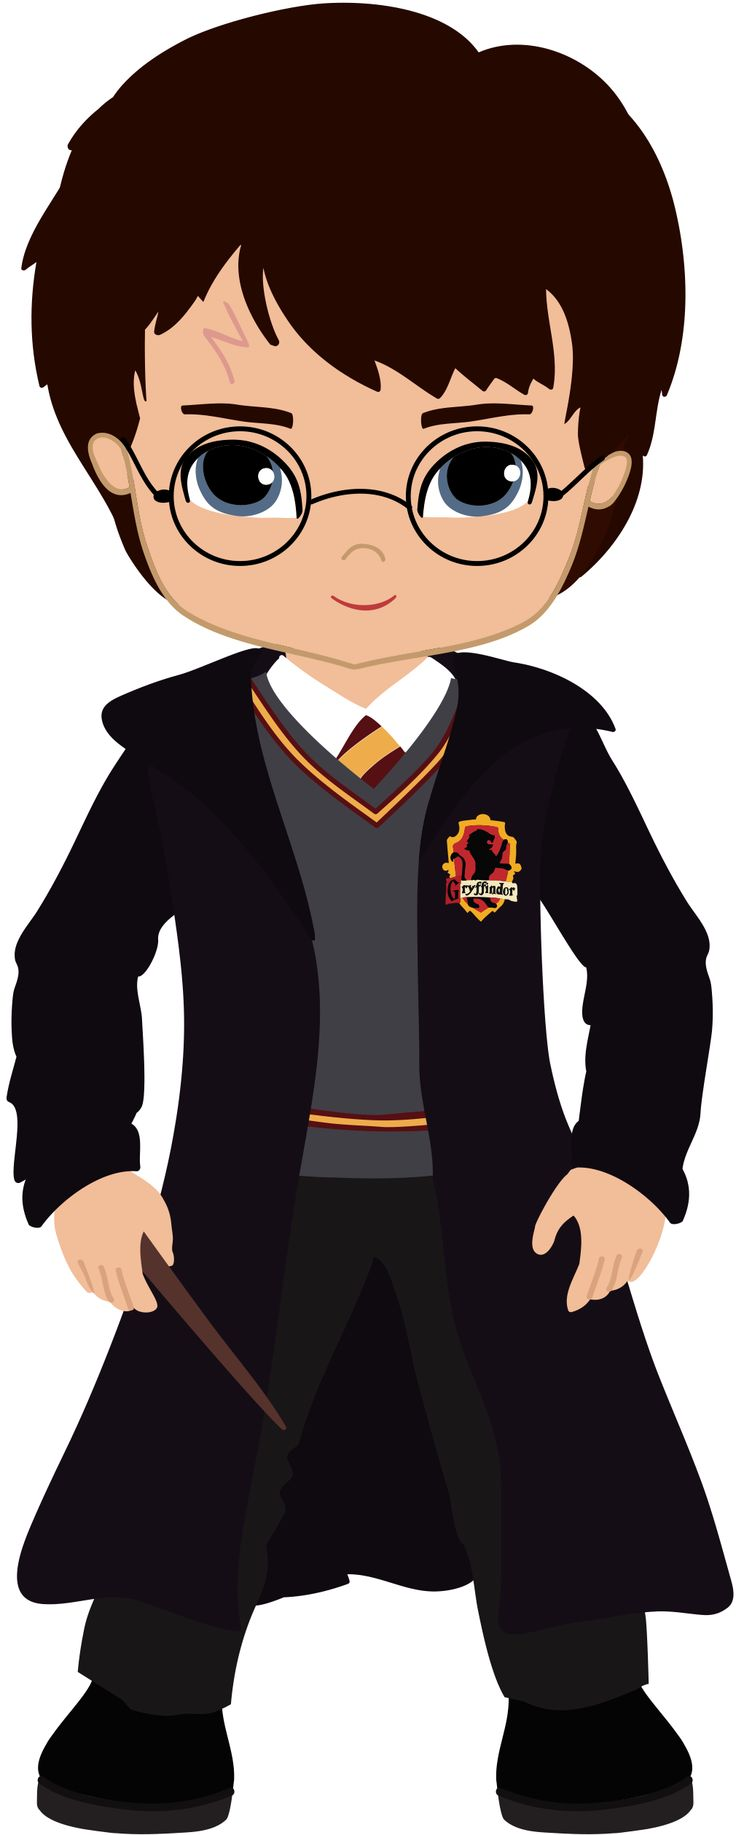 Free harry potter clip art pi - Harry Potter Clipart